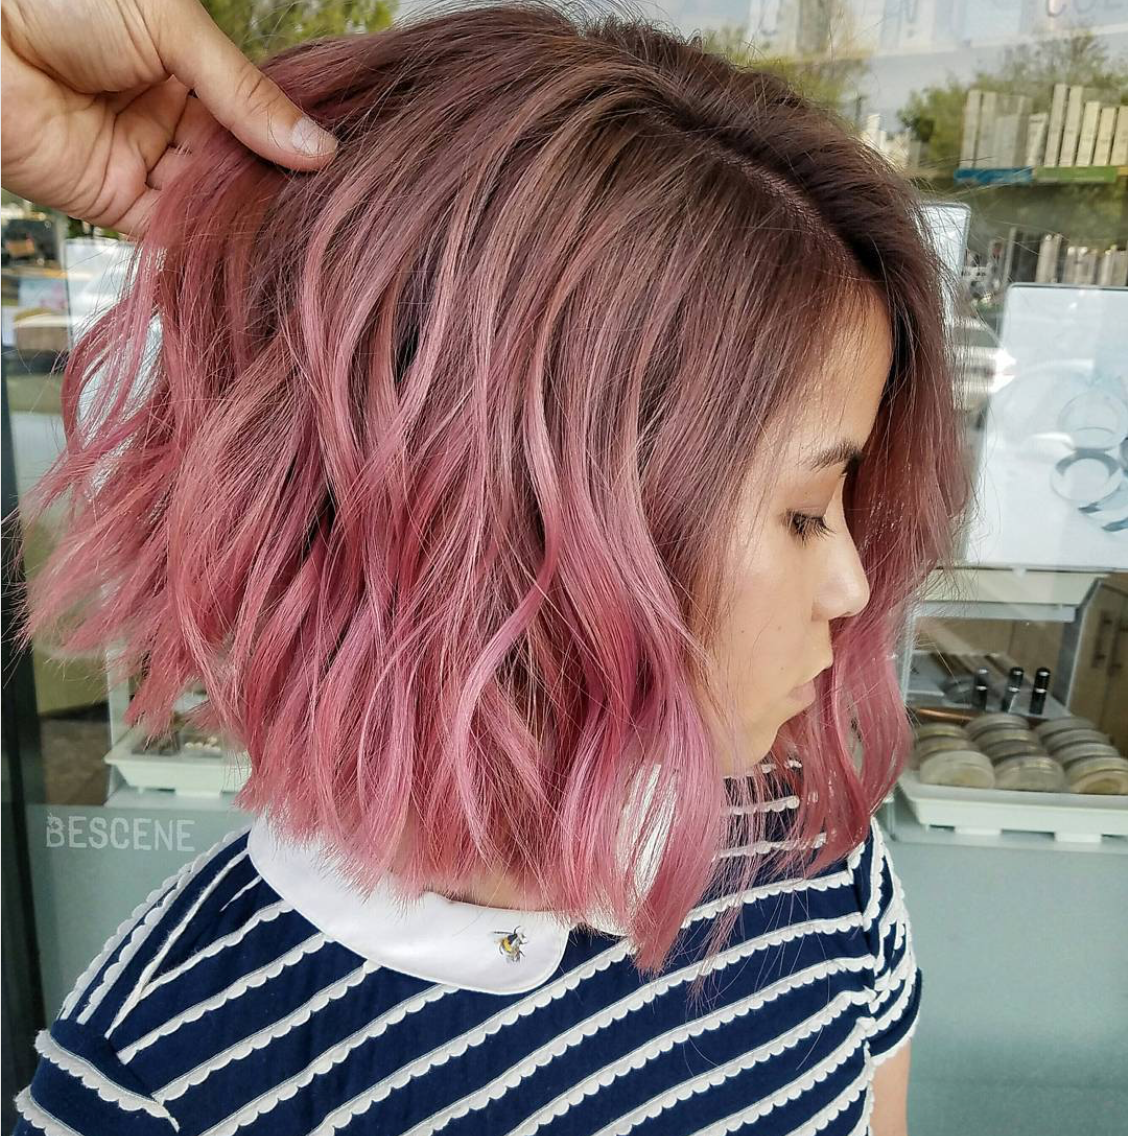 10 short ombré hairstyles